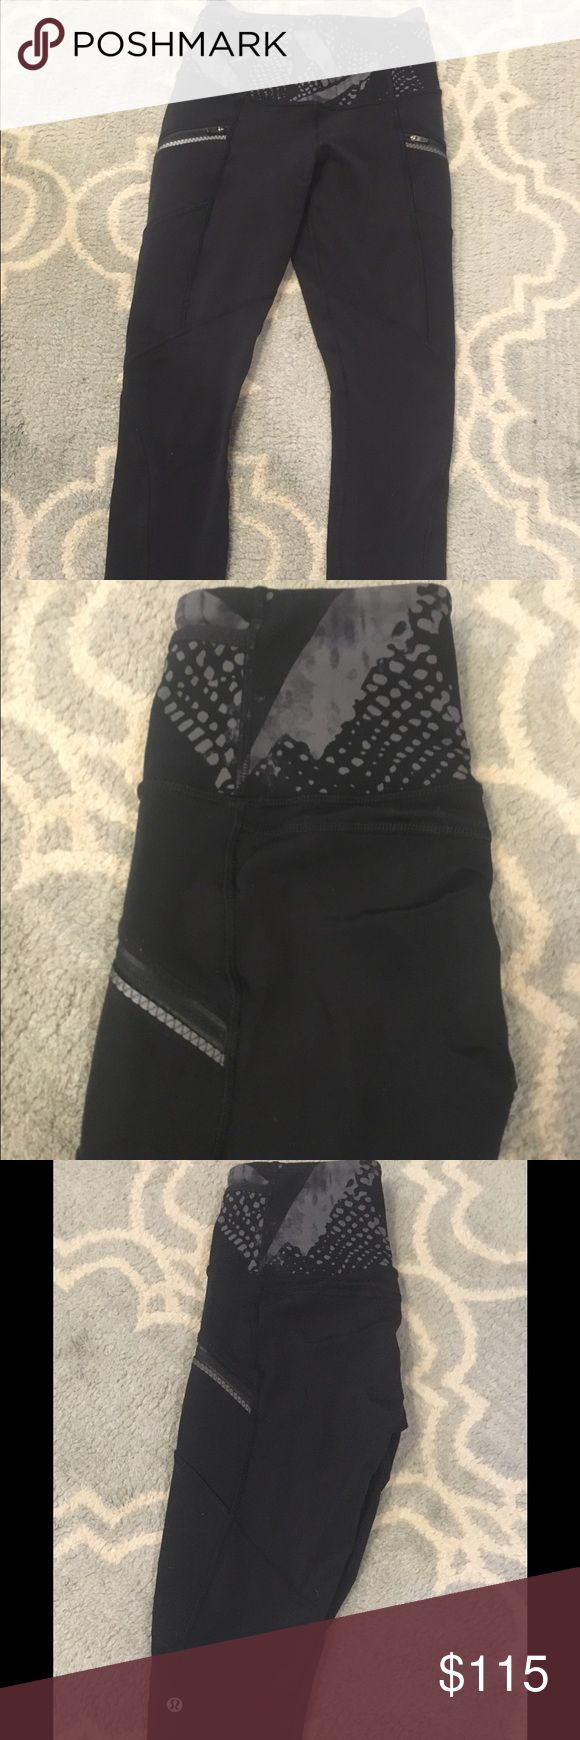 1 day SALE**Lululemon toasty tech tight size 2 Lululemon toasty tech tight size 2.  VGUC no flaws!  They don't make these anymore so they are hard to find.  Fleece lined!!! Warm & cozy 💕💕💕Have been hemmed to fit a 5'4 lady at full length** lululemon athletica Pants Leggings